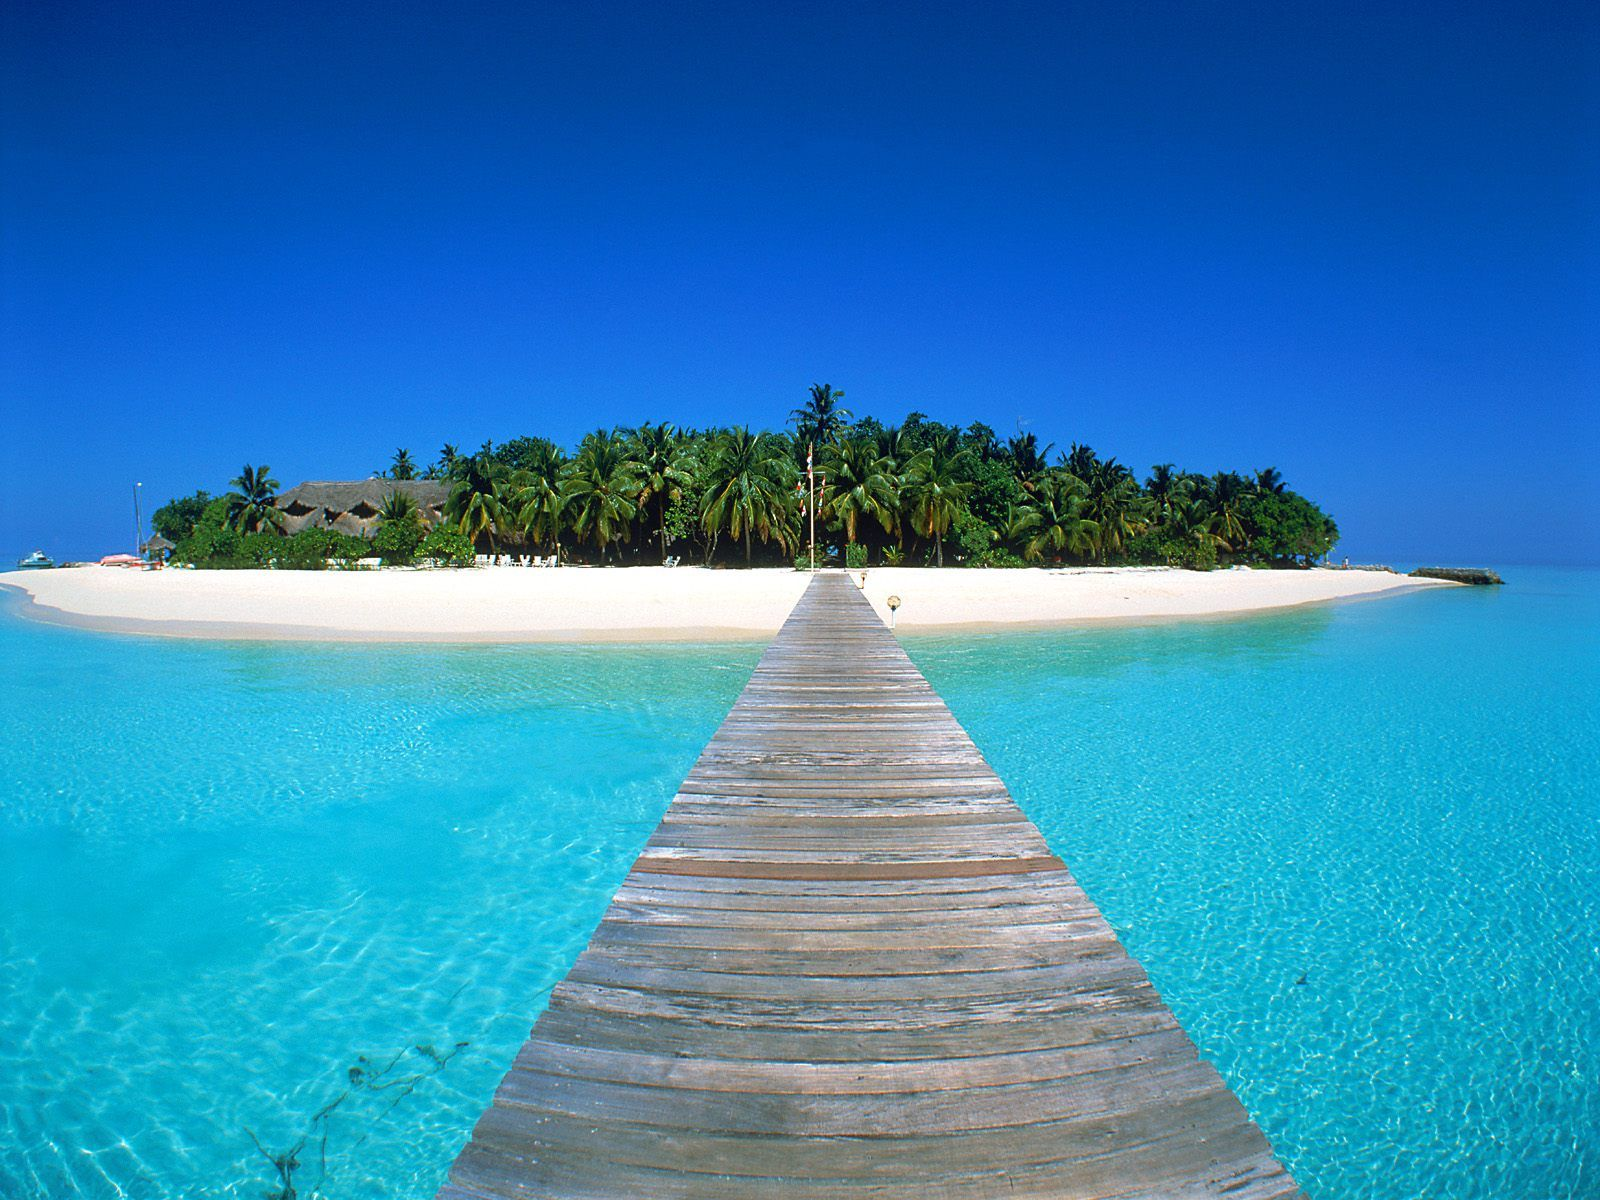 Maldives is the best, famous beach attraction and natural place